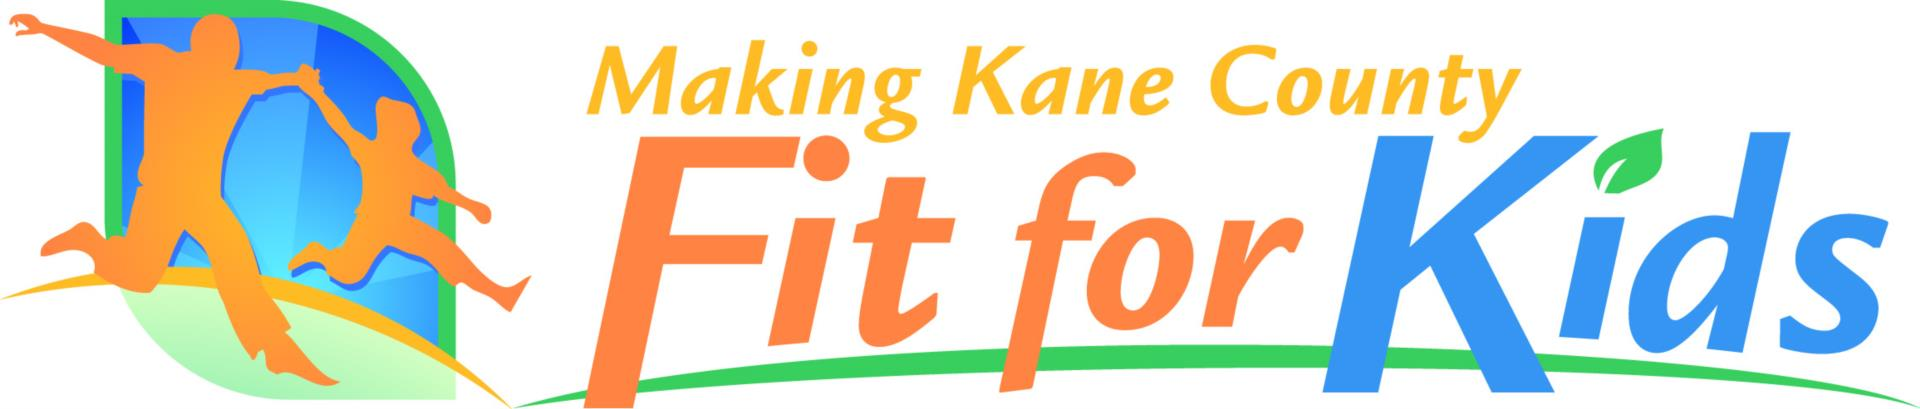 Making Kane County Fit for Kids Logo